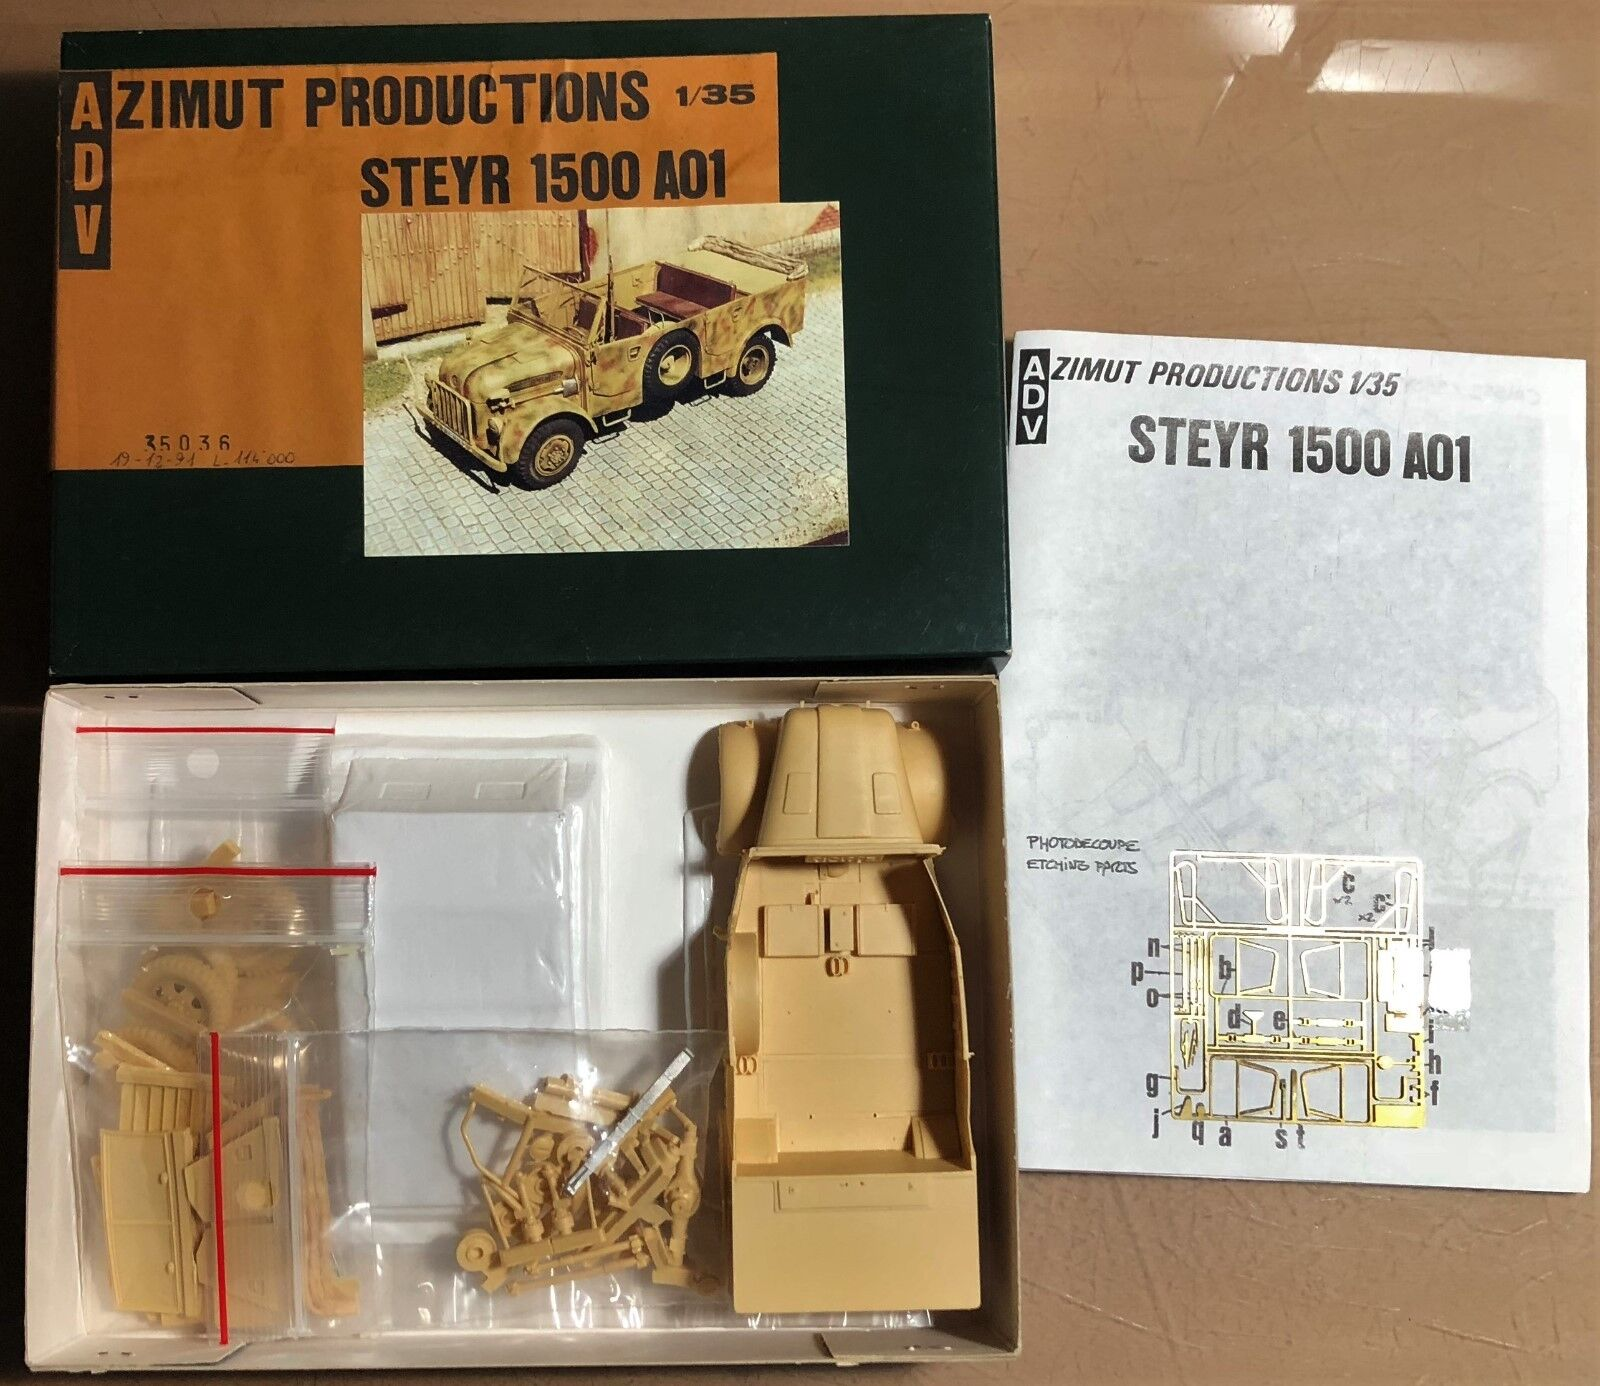 ADV azimuth production 35036-Steyr 1500 a01 - 1 35 Resin Kit